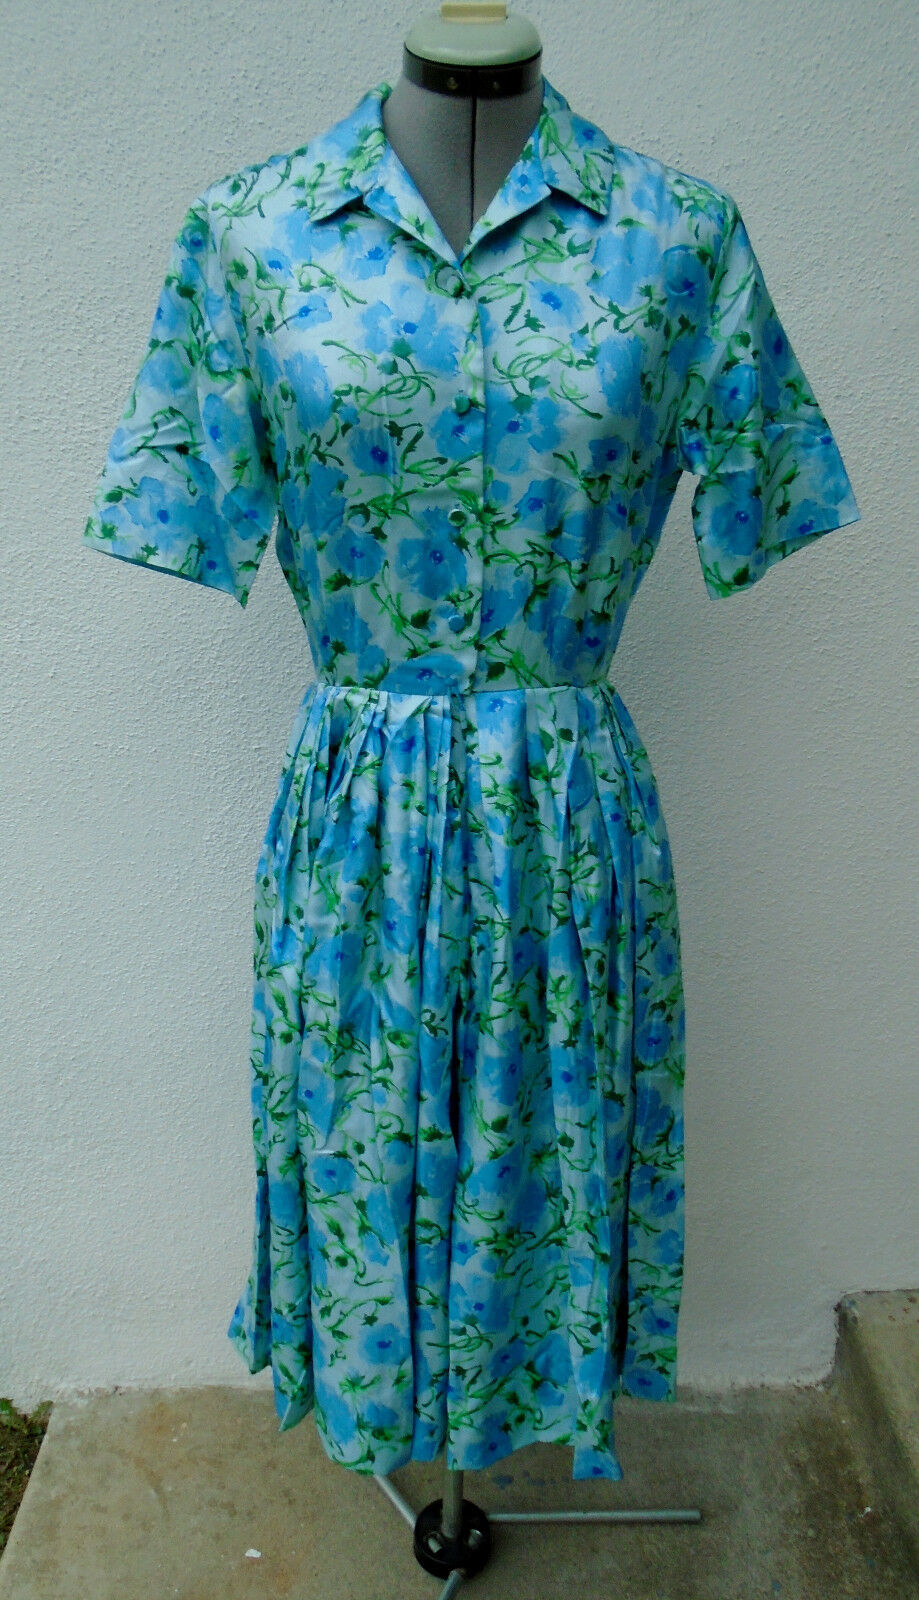 Vintage 1950s RENARDS bluee Floral Cirlcle Skirt Day Dress Small